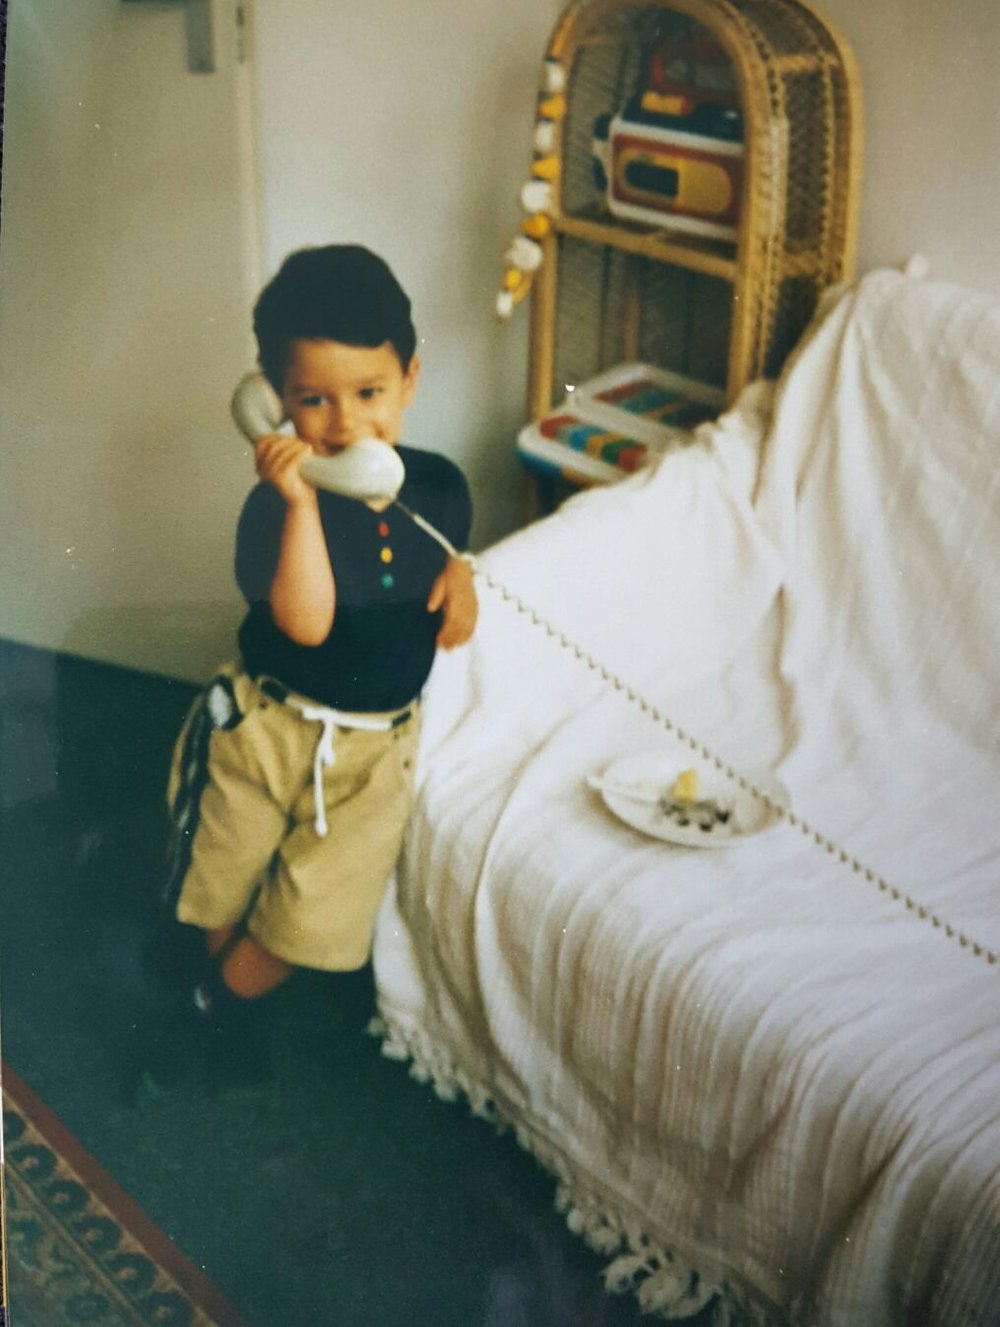 me taking your call